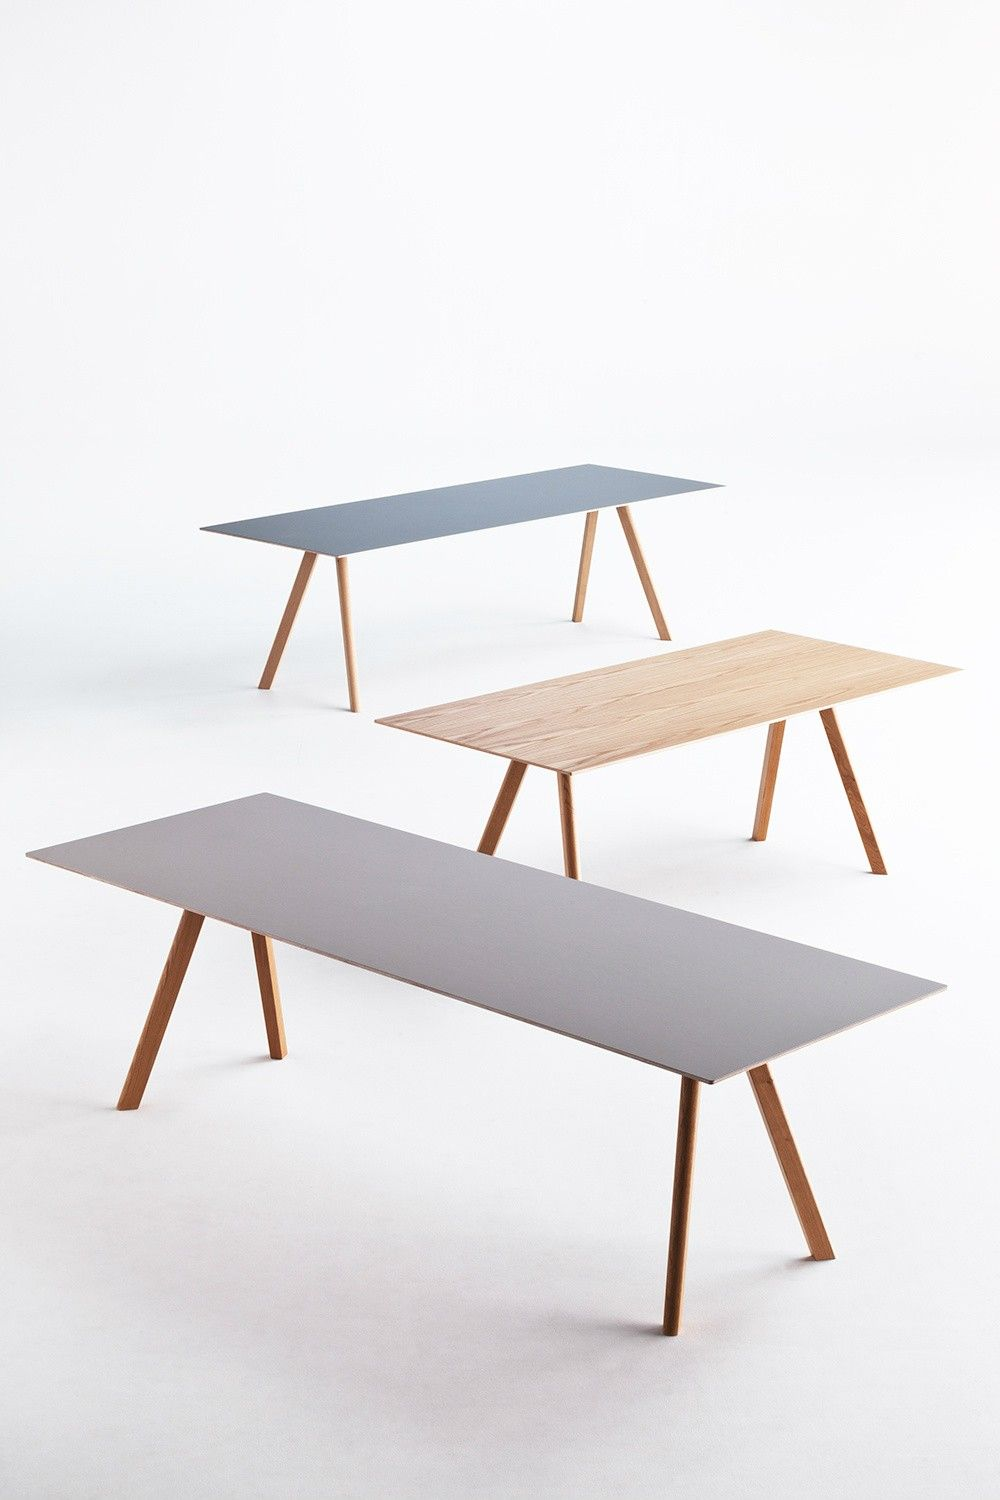 Tisch design  Hay Copenhague Table CPH30 Tisch | Scandinavian Design | Pinterest ...